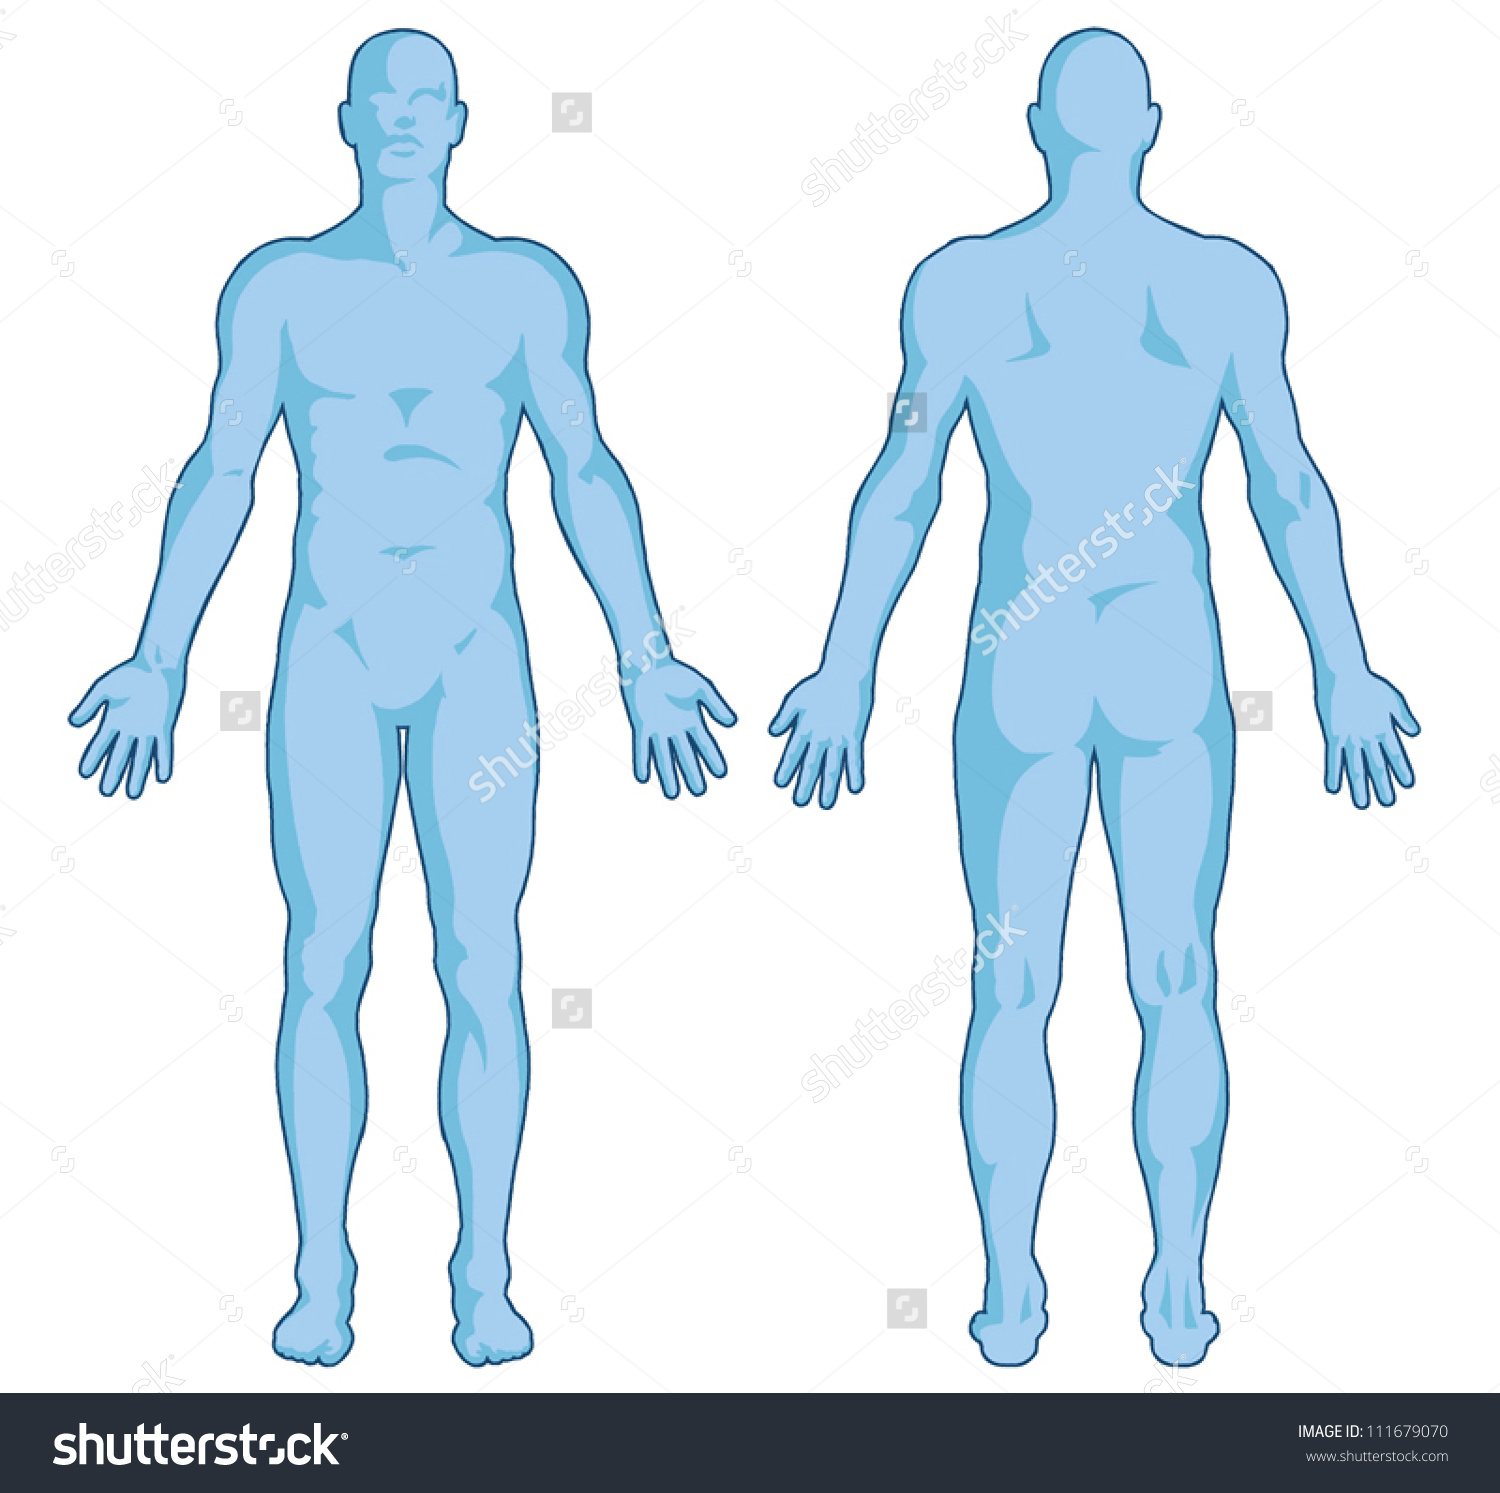 Male Body Shapes Human Body Outline Stock Vector 111679070.